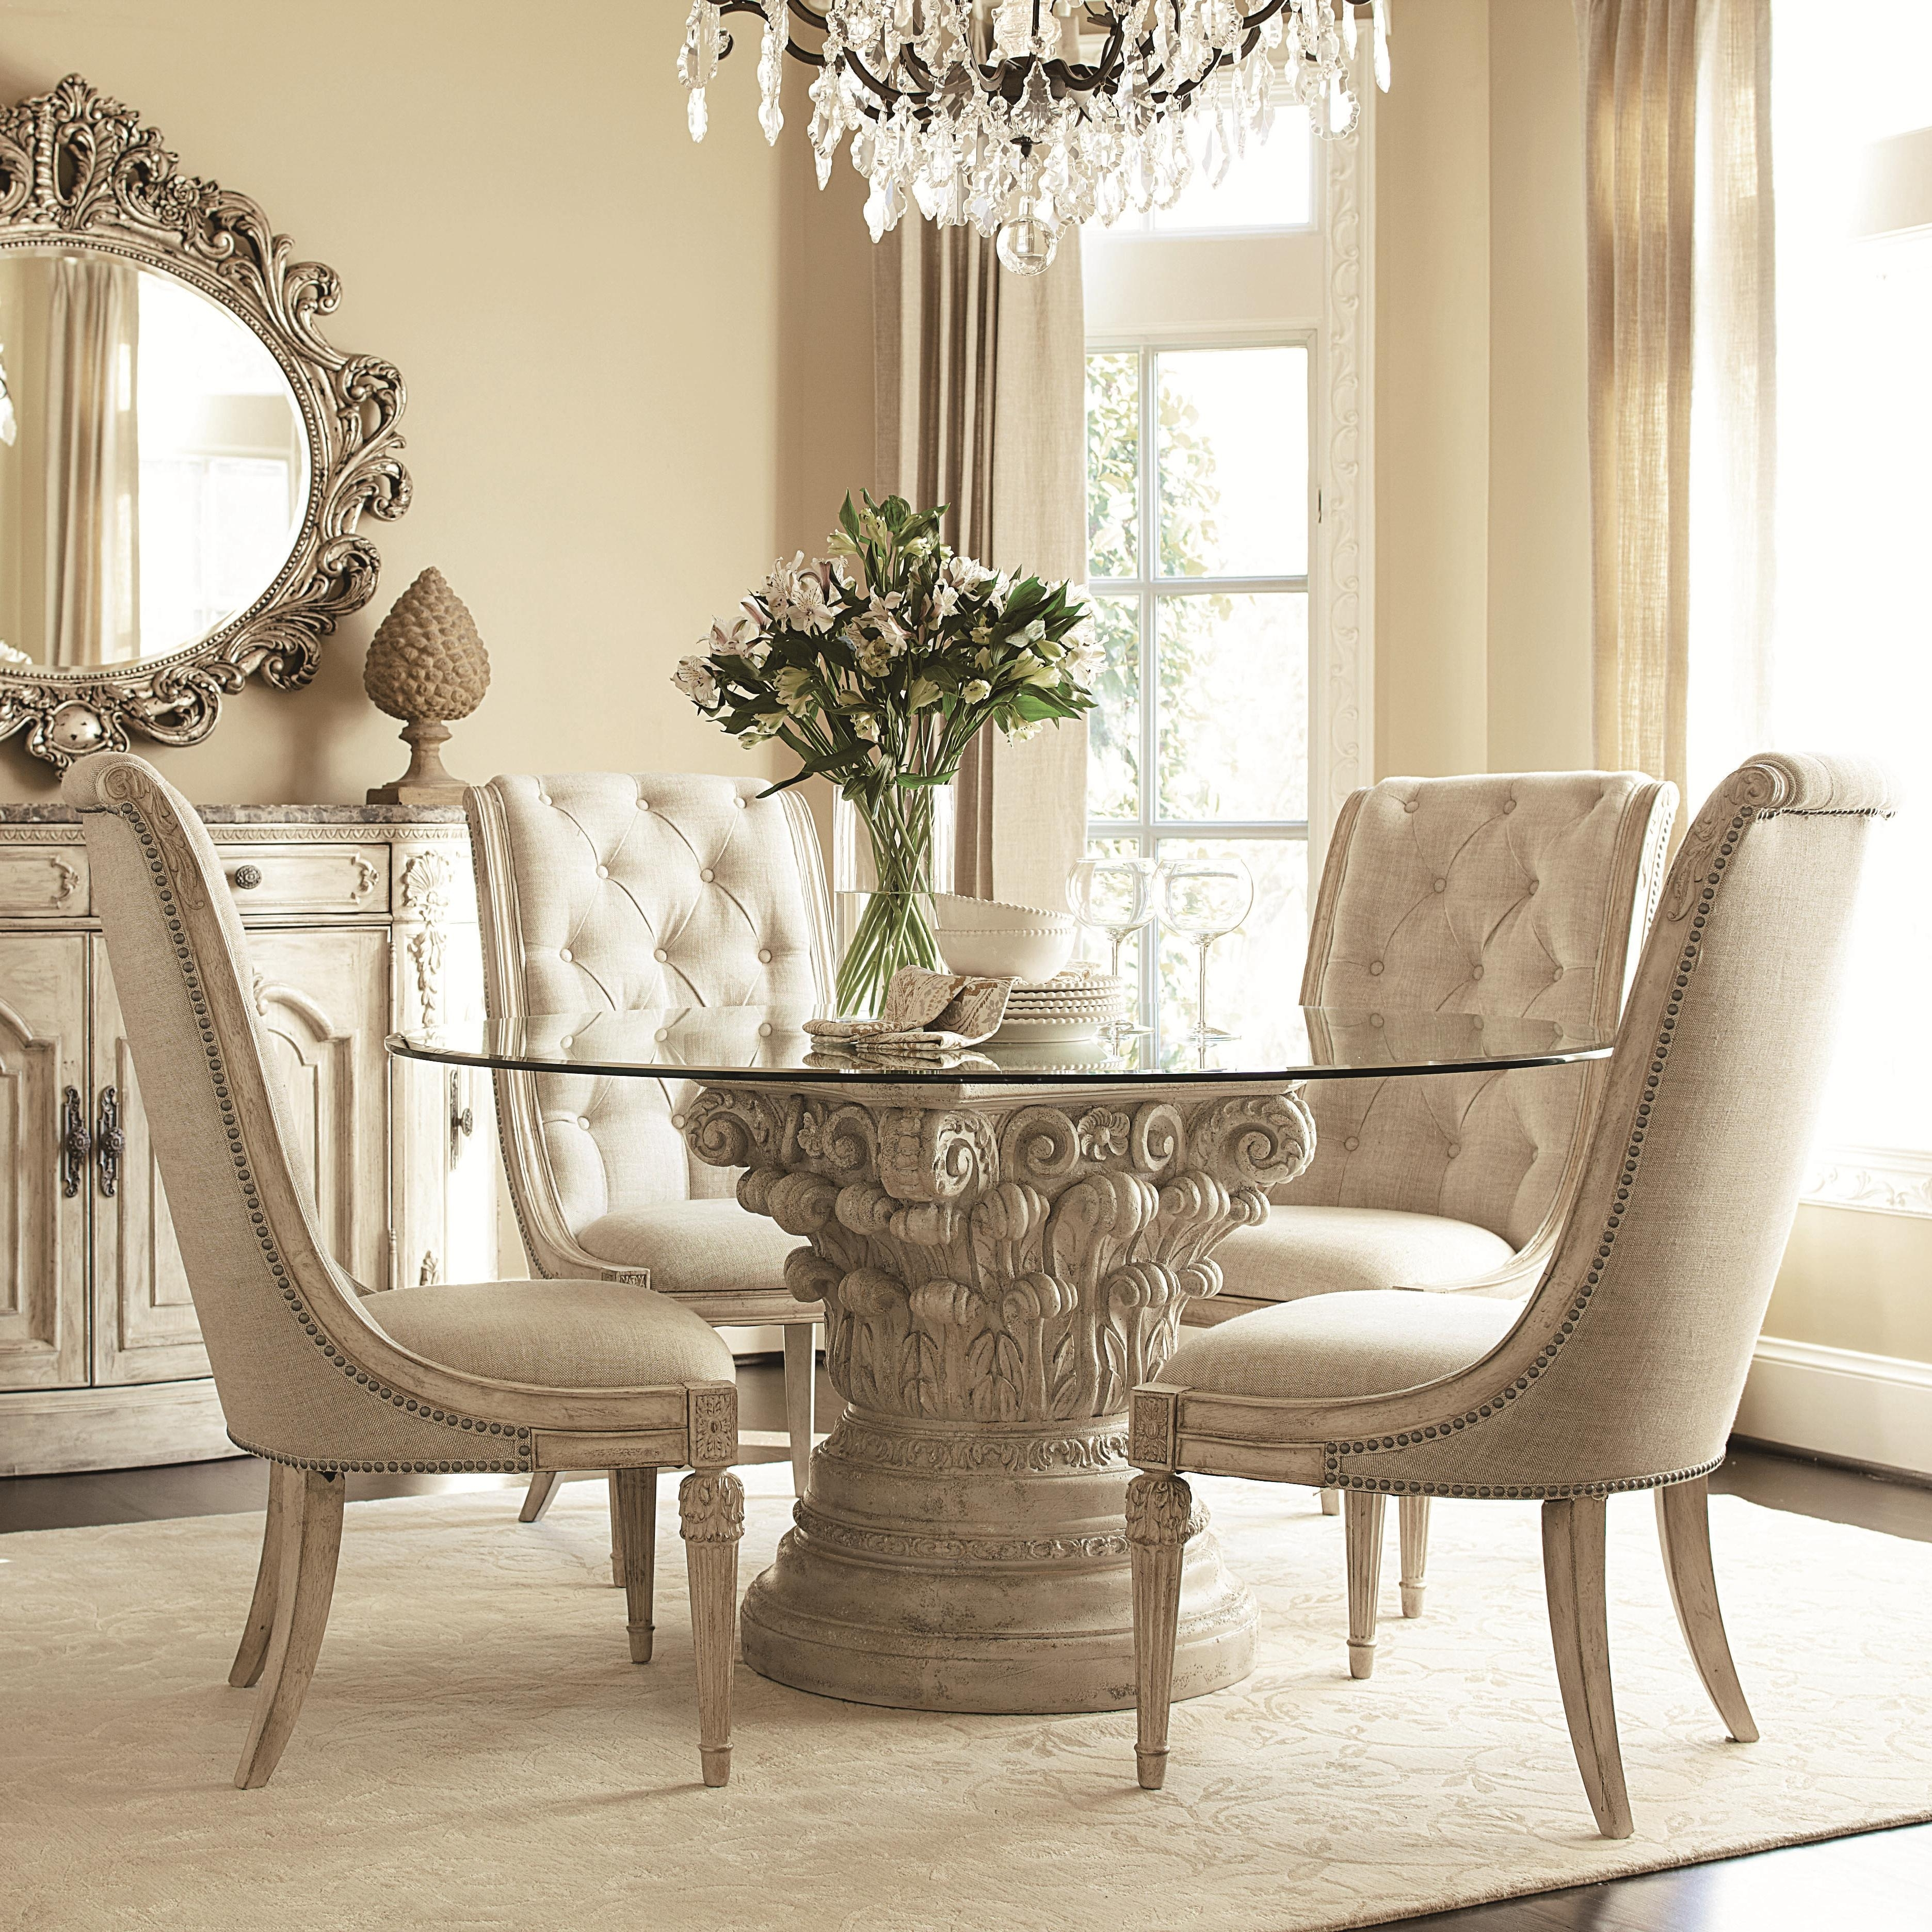 American Drew Jessica Mcclintock Home – The Boutique Collection 5 Inside Best And Newest Craftsman 5 Piece Round Dining Sets With Side Chairs (Image 2 of 20)